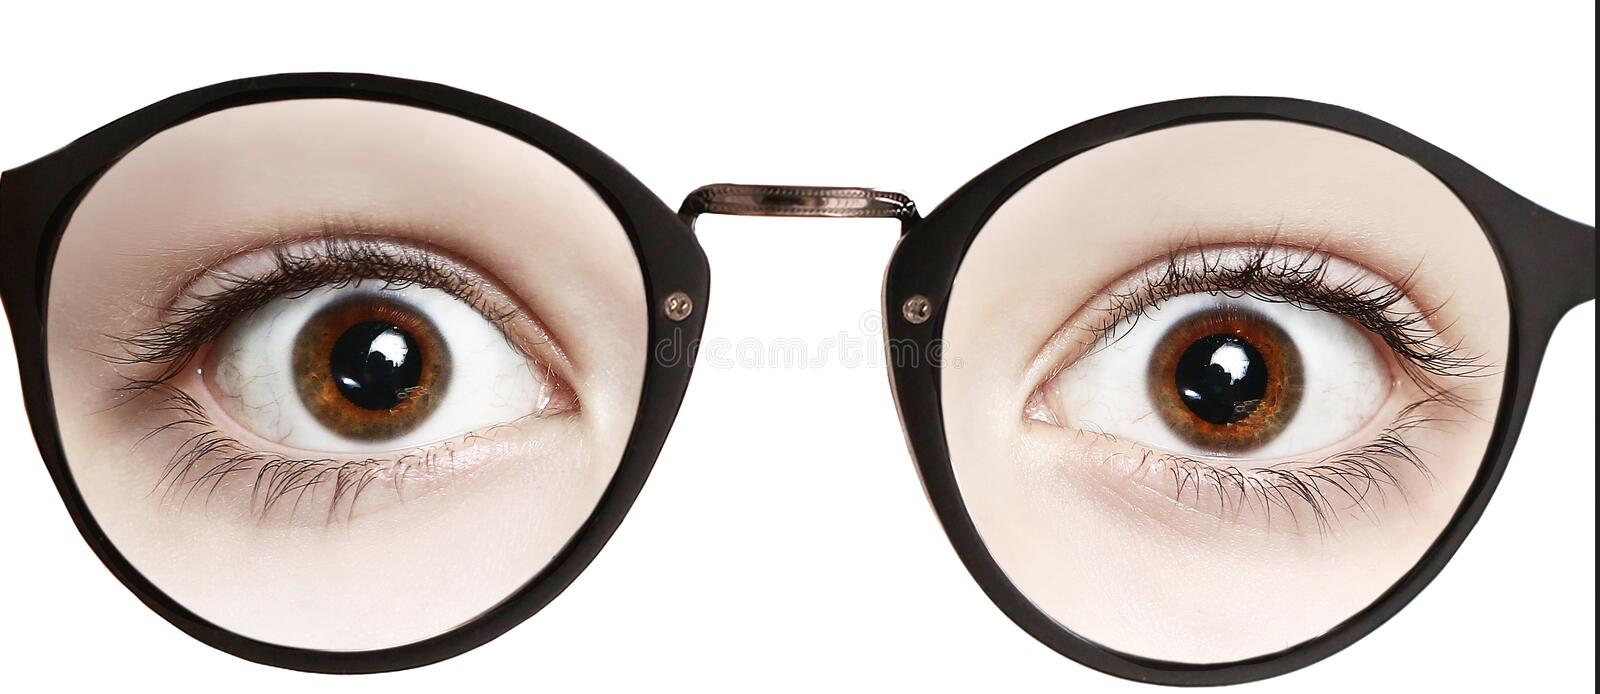 Close up photo of boy eyes wide open in glasses royalty free stock image